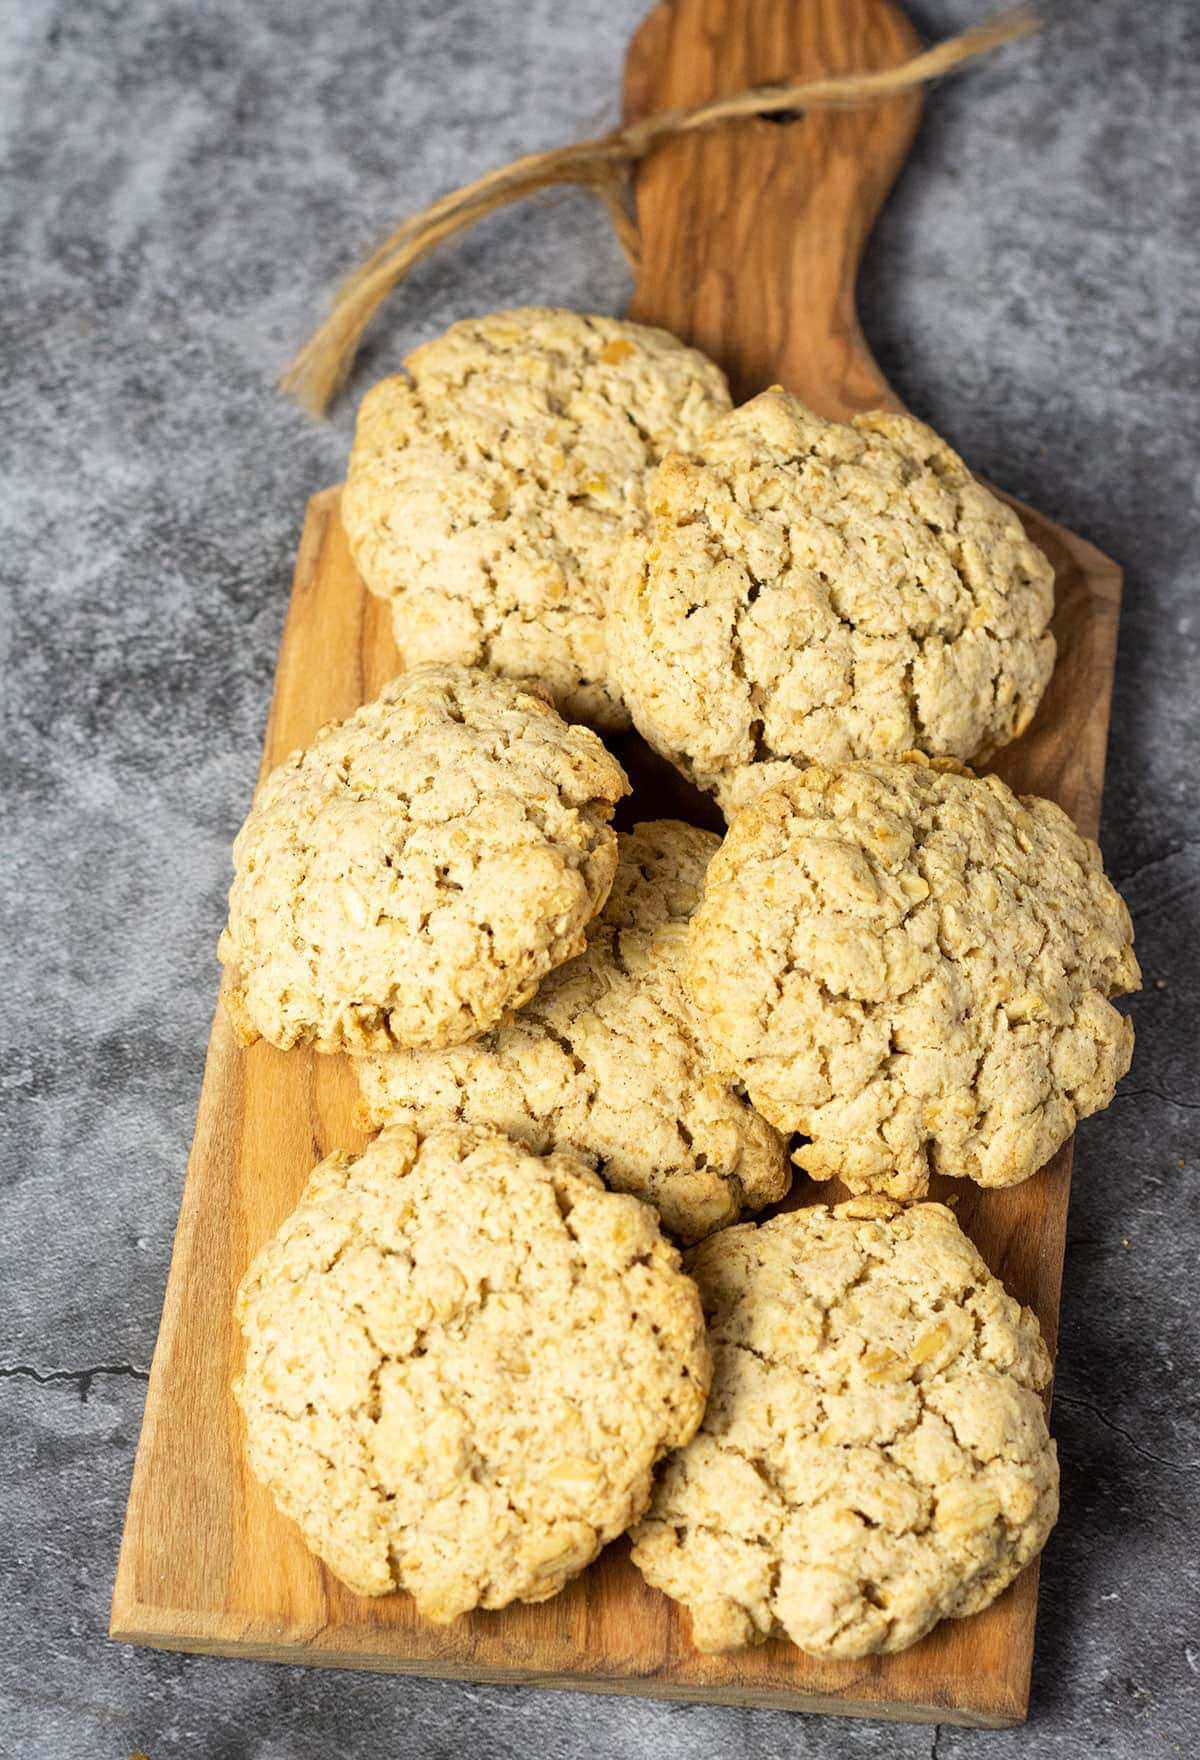 Overlay Vegan Oatmeal Cookies on a wooden cutting board on a grey background